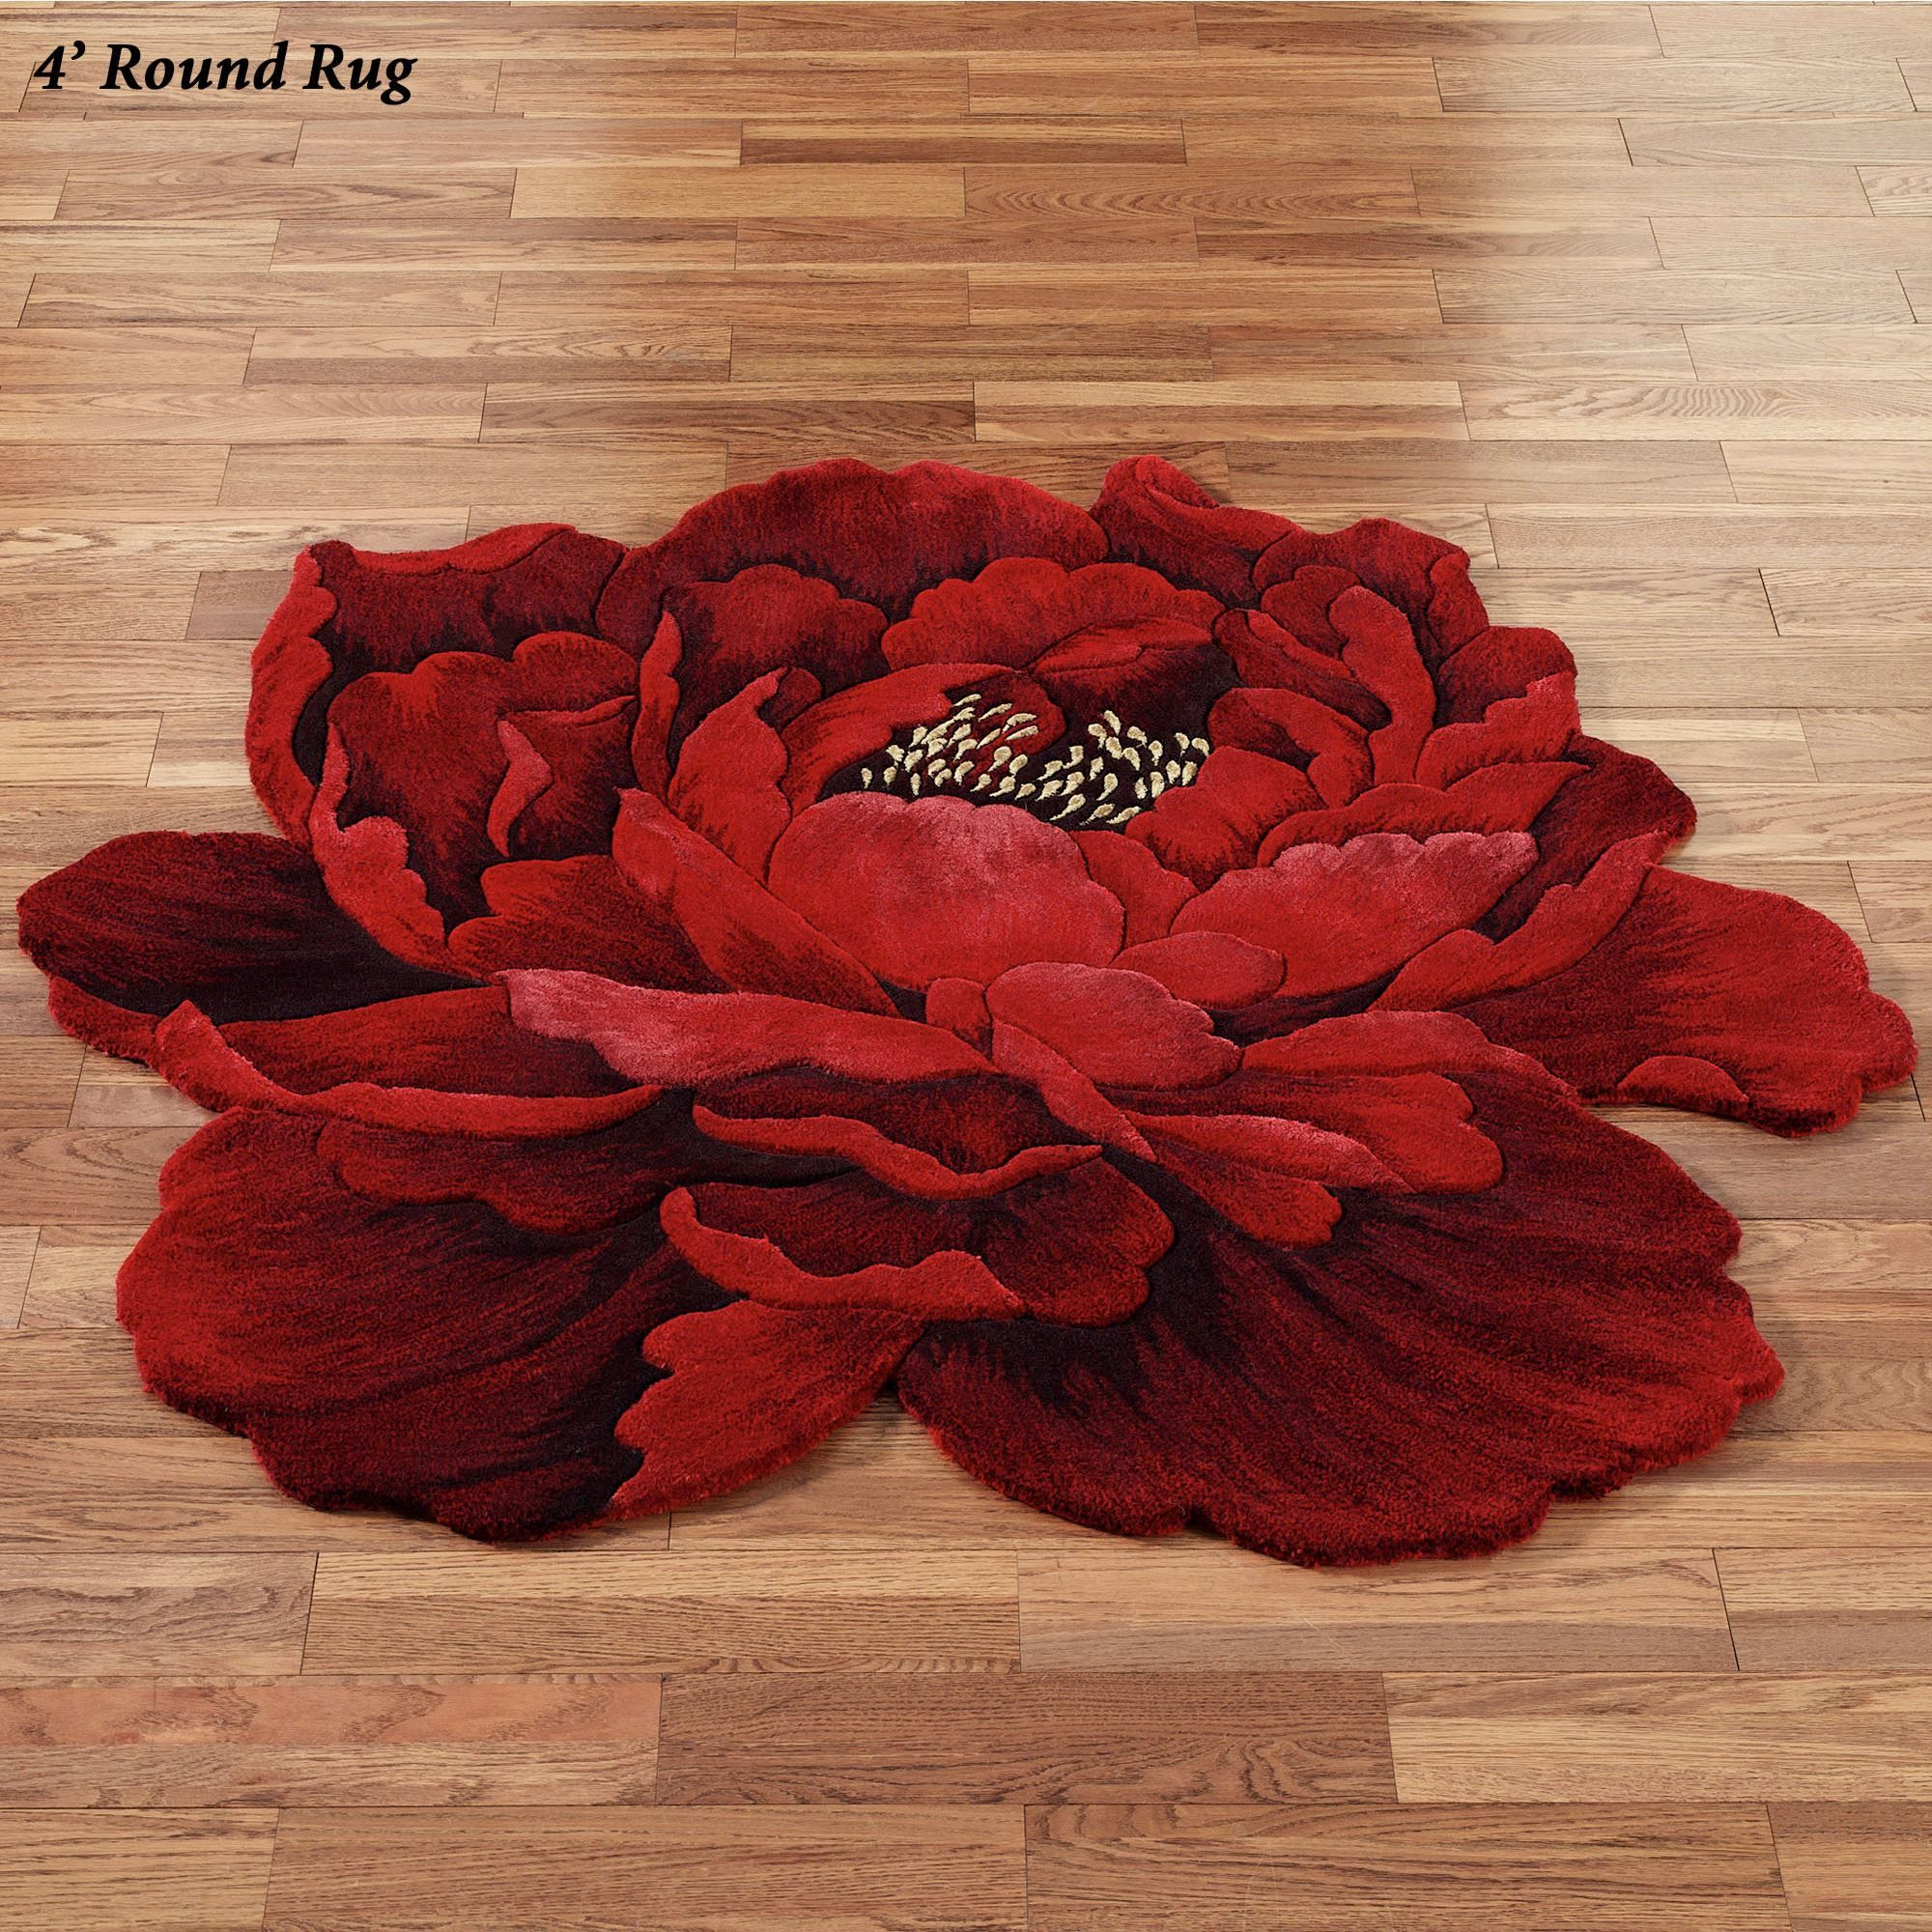 Scarlet Magic Peony Flower Shaped Round Rugs Floral rug